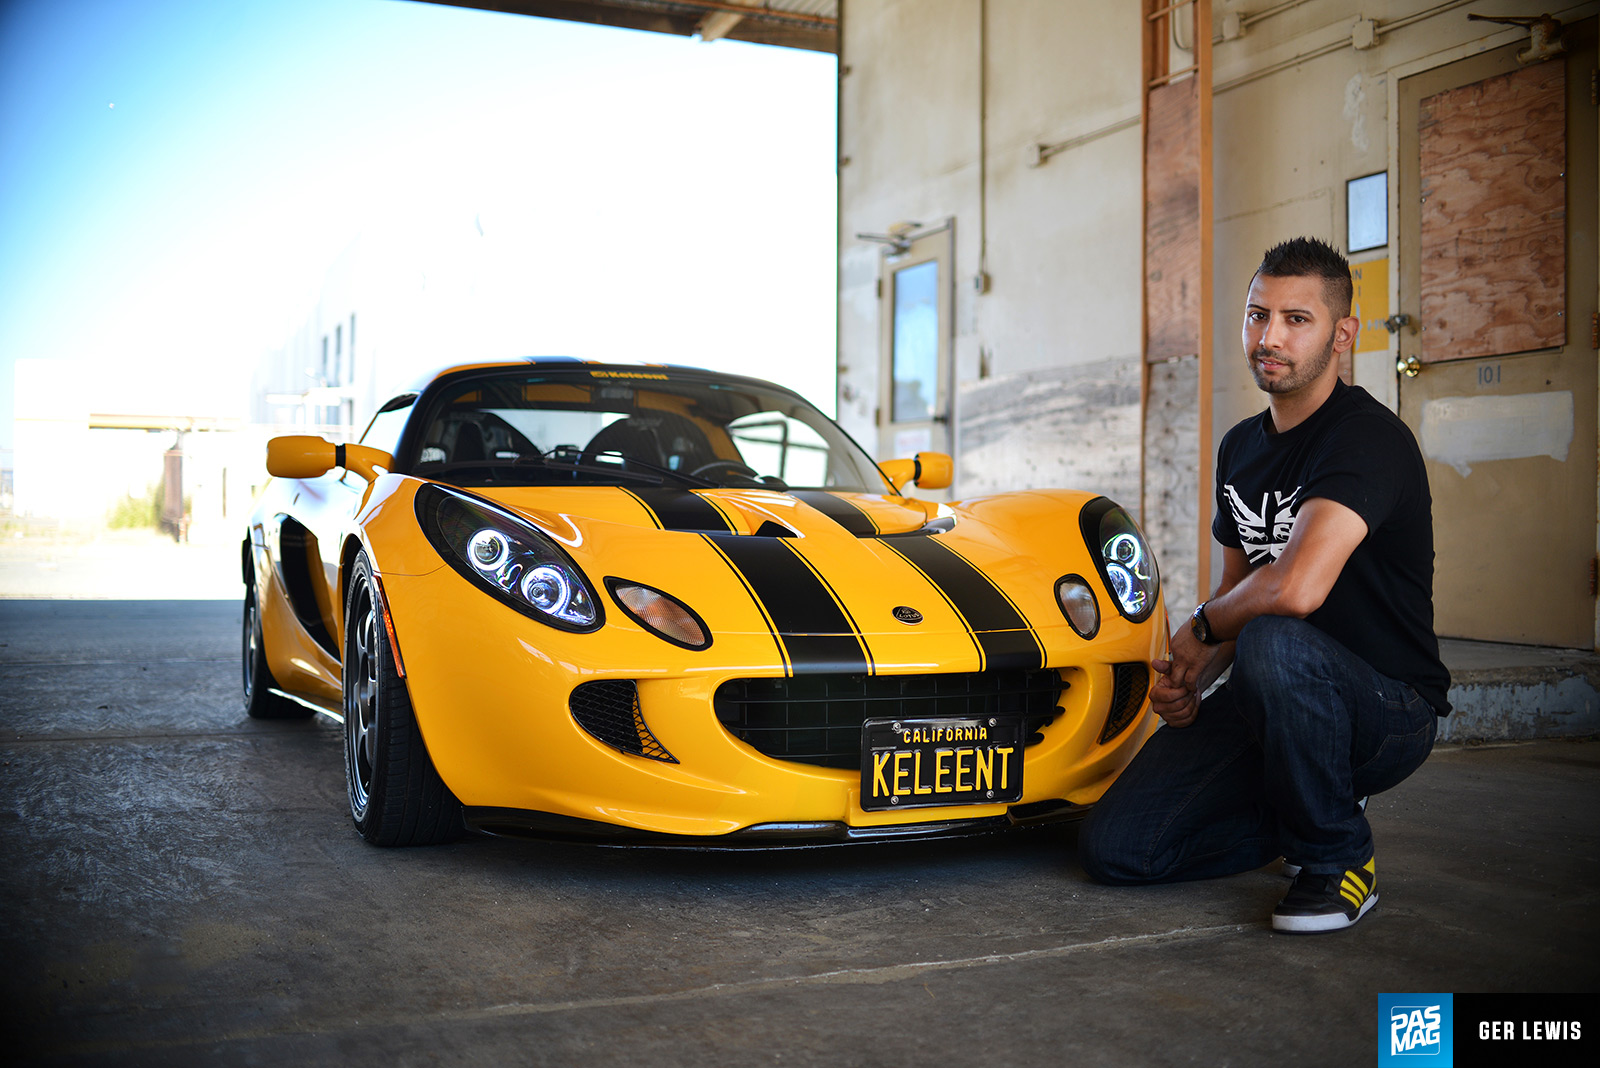 16 Clint Yesui 2005 Lotus Elise PASMAG TBGLIVE